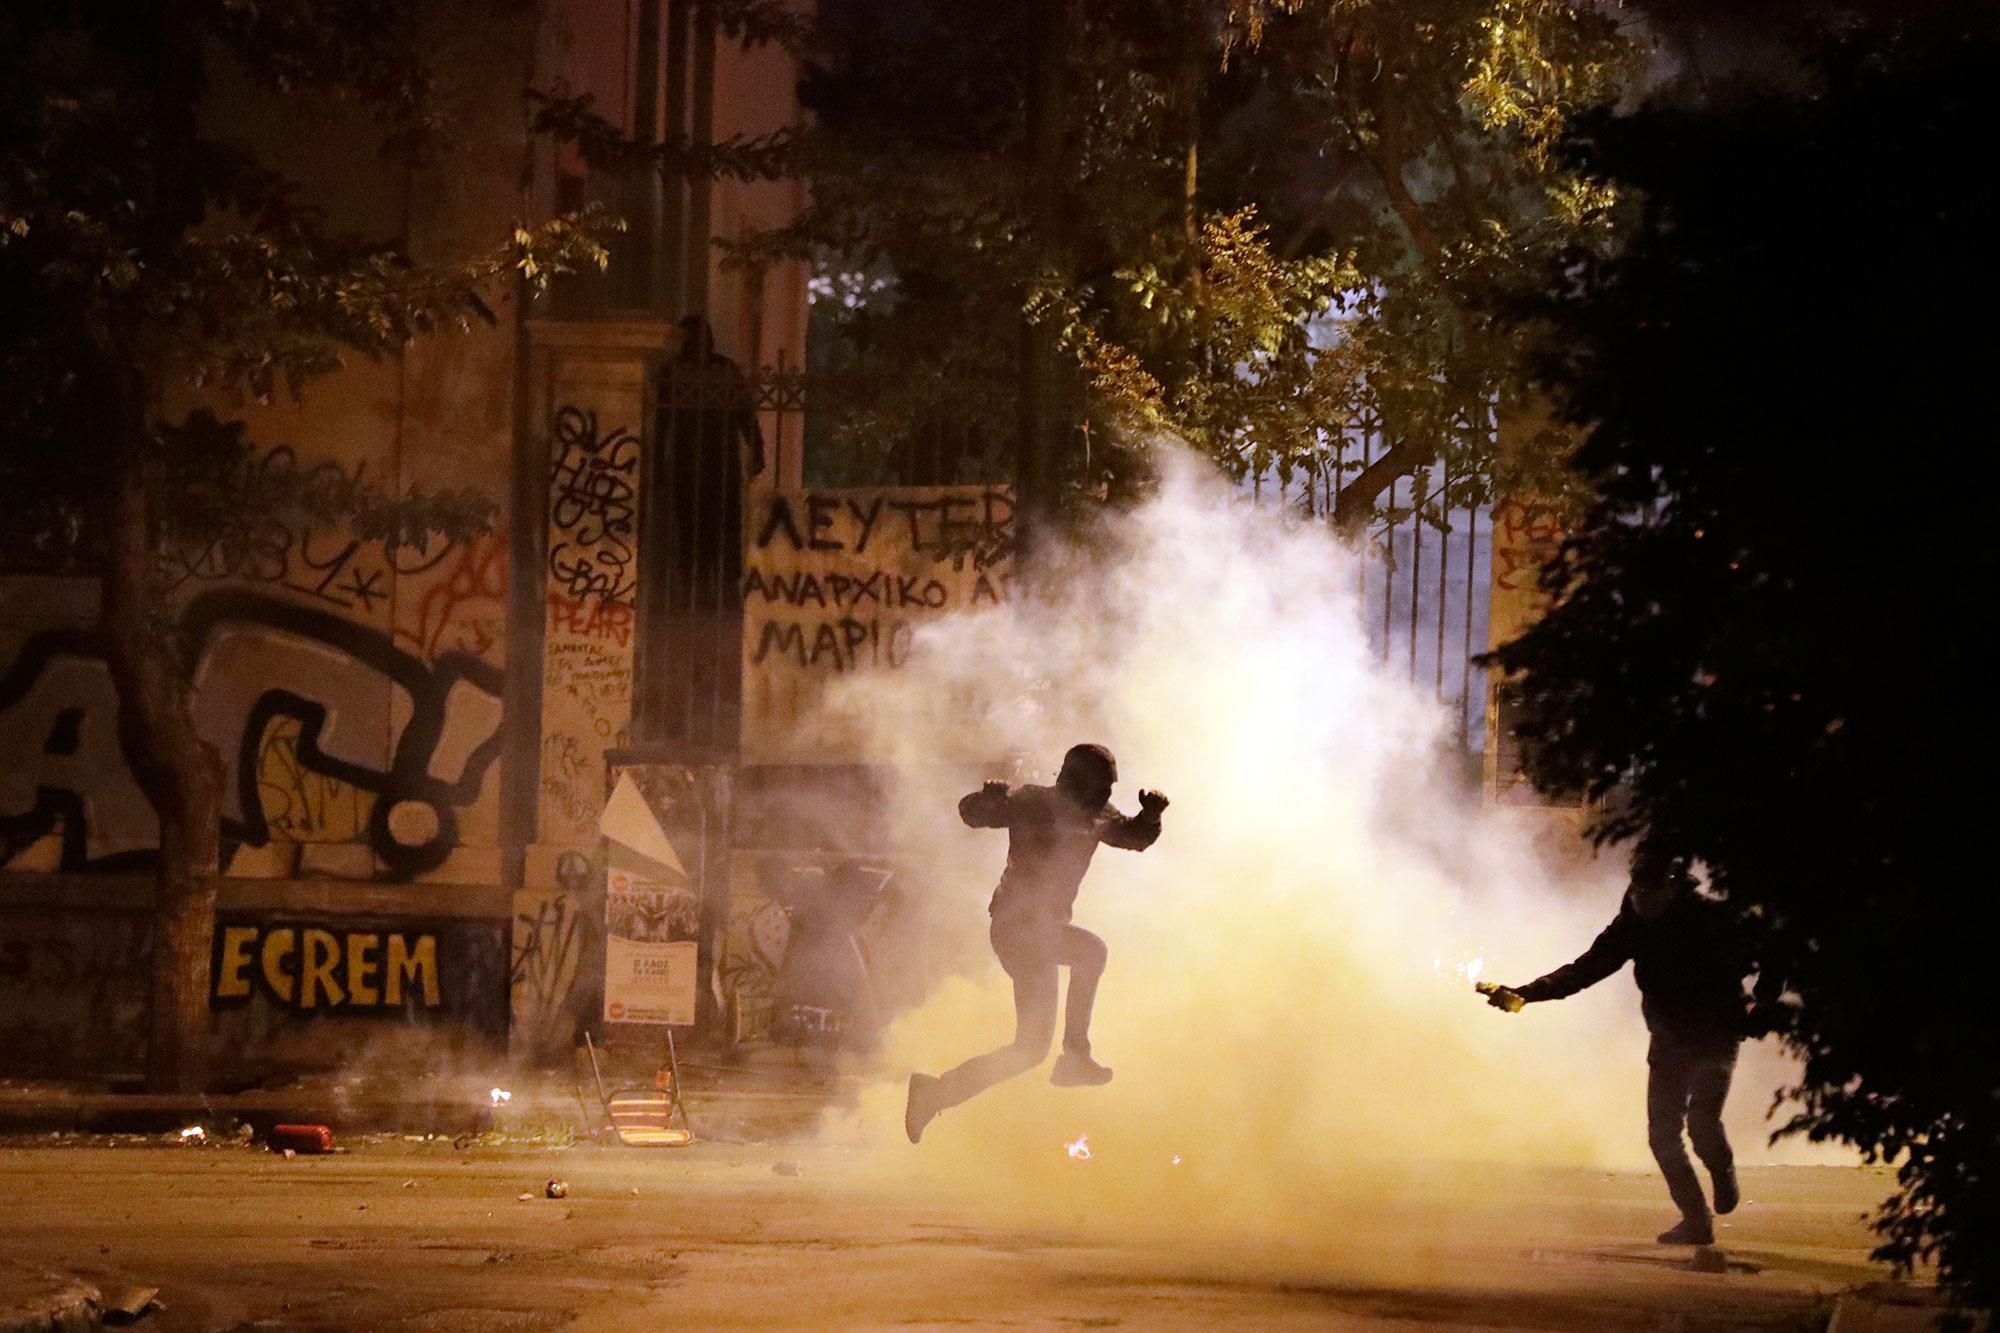 <p>A protester jumps to avoid tear gas as another one prepares to throw a firebomb during a protest against the visit of President Barack Obama in Athens, Tuesday, Nov. 15, 2016. (AP Photo/Thanassis Stavrakis) </p>